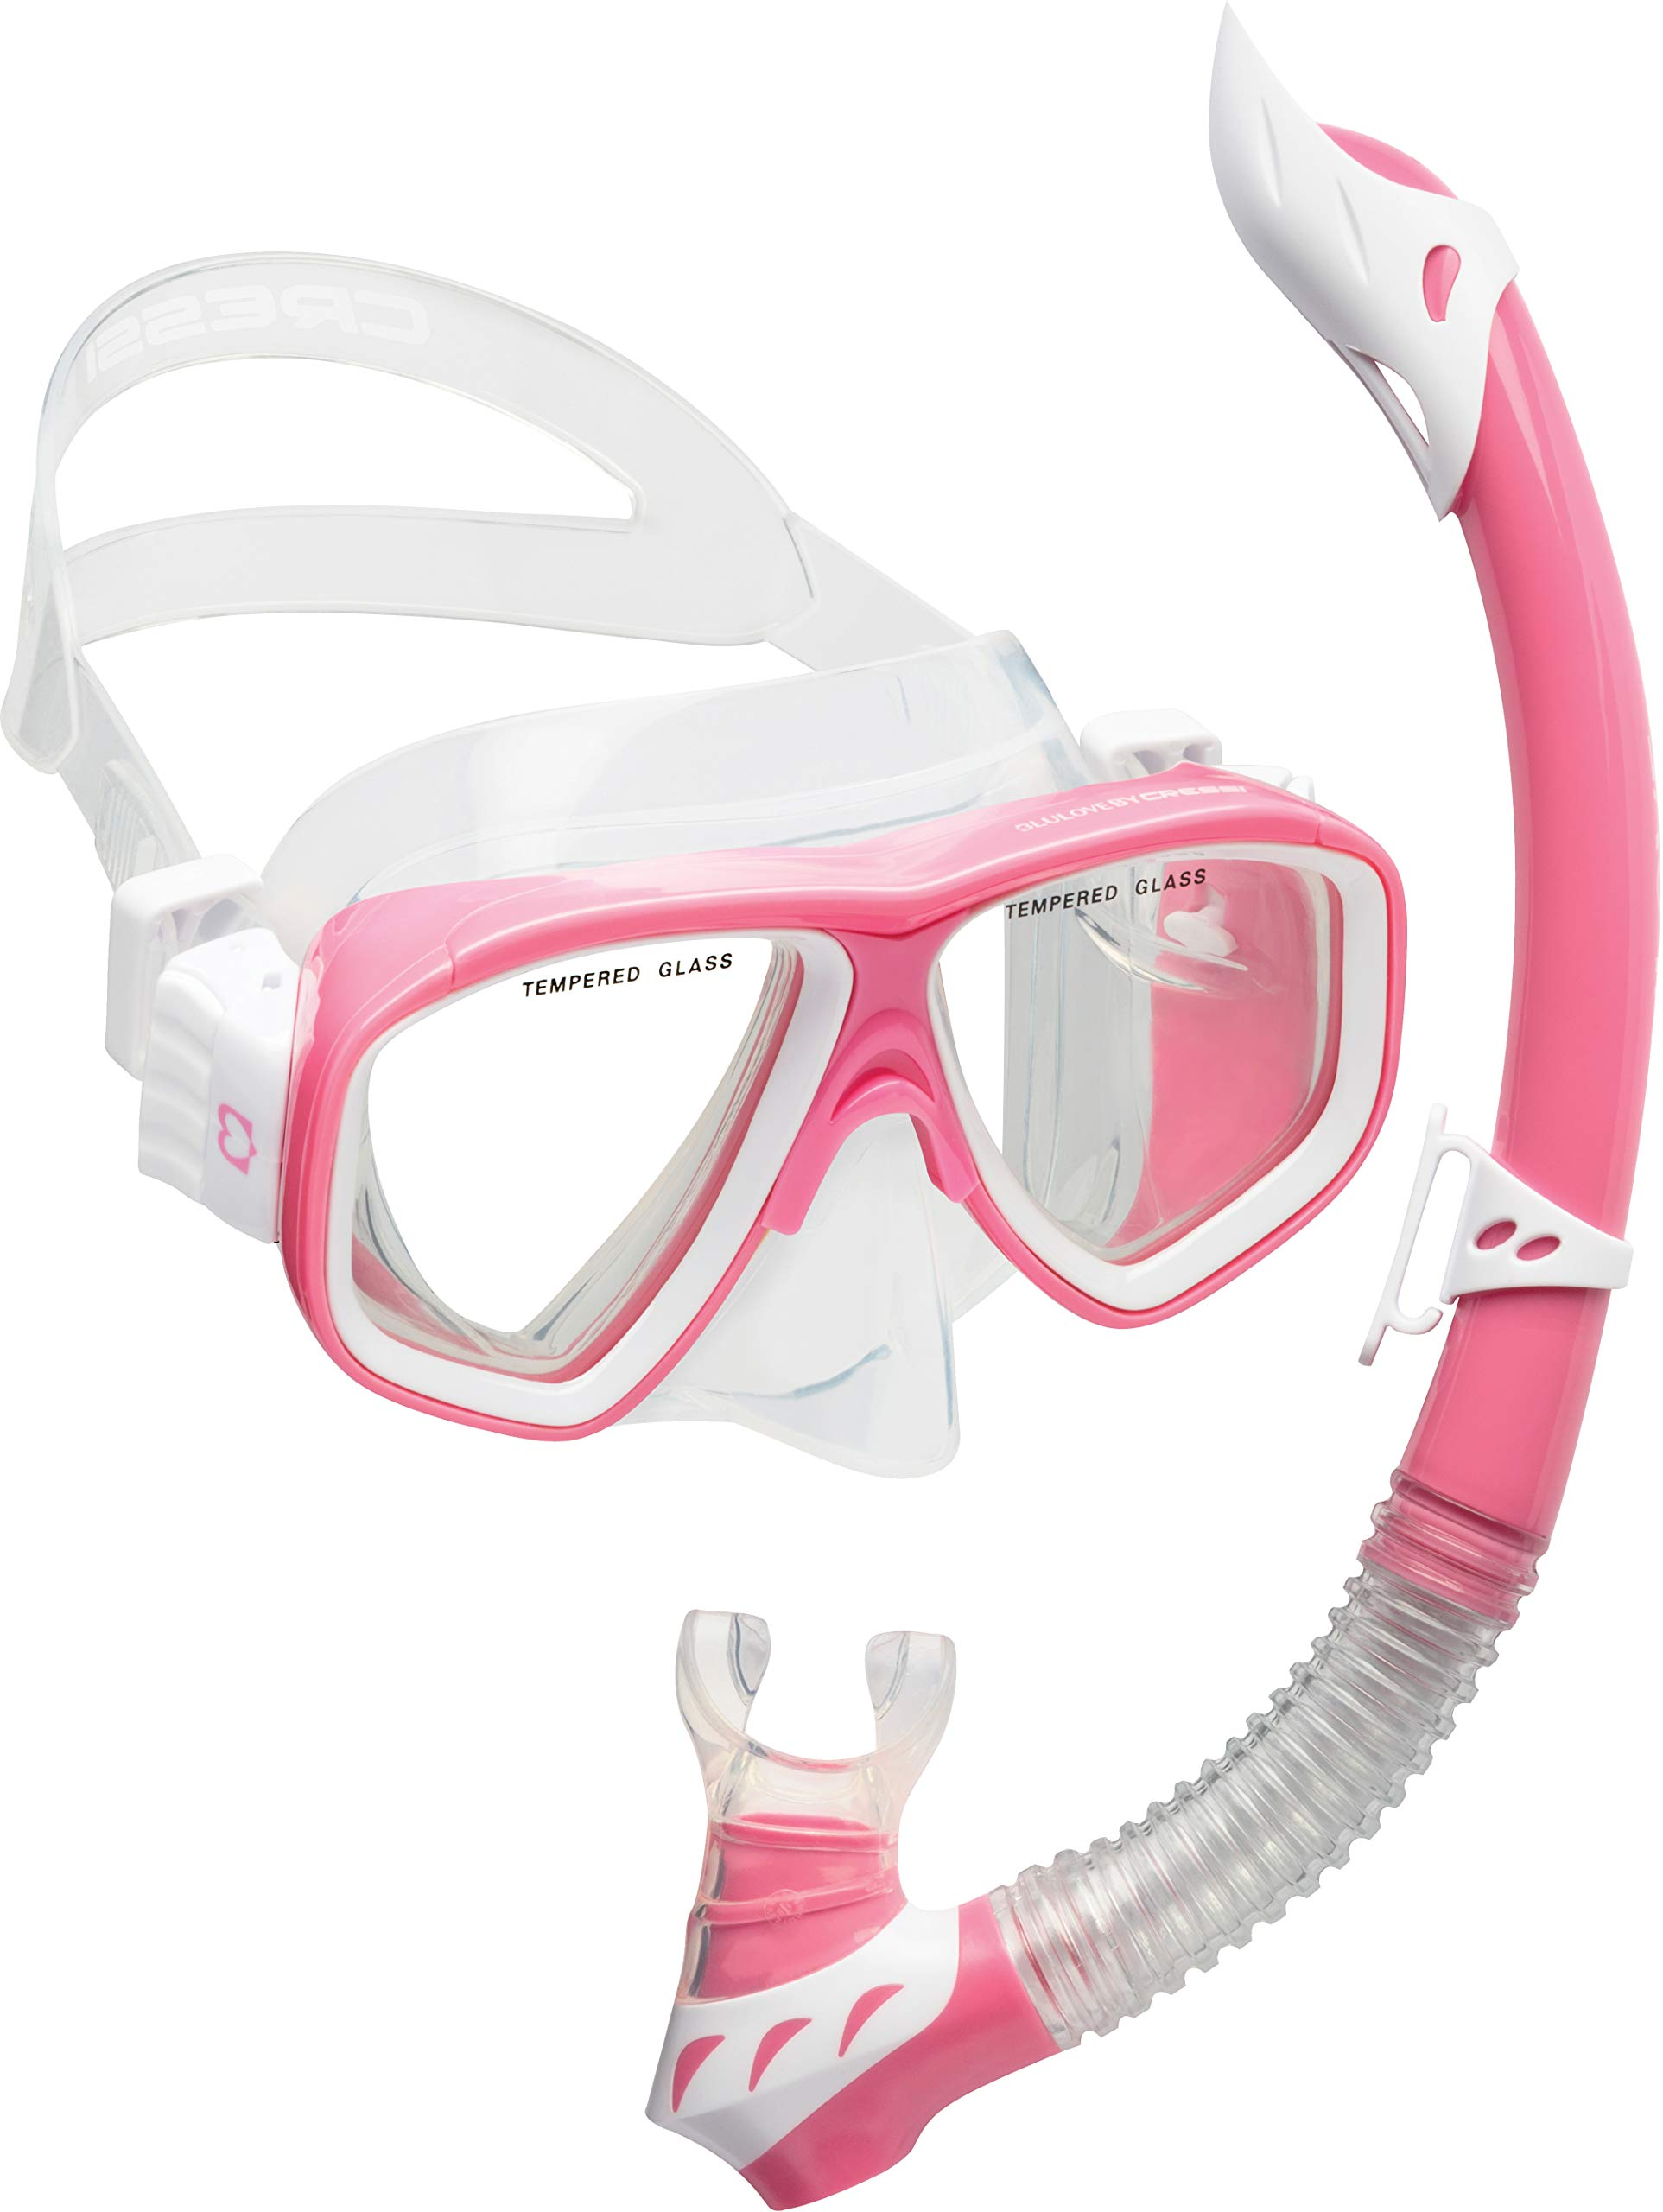 Cressi Kids Snorkeling Kit (Mask & Snorkel) for Children aged from 3 to 8 years old | Rocks Combo: designed in Italy